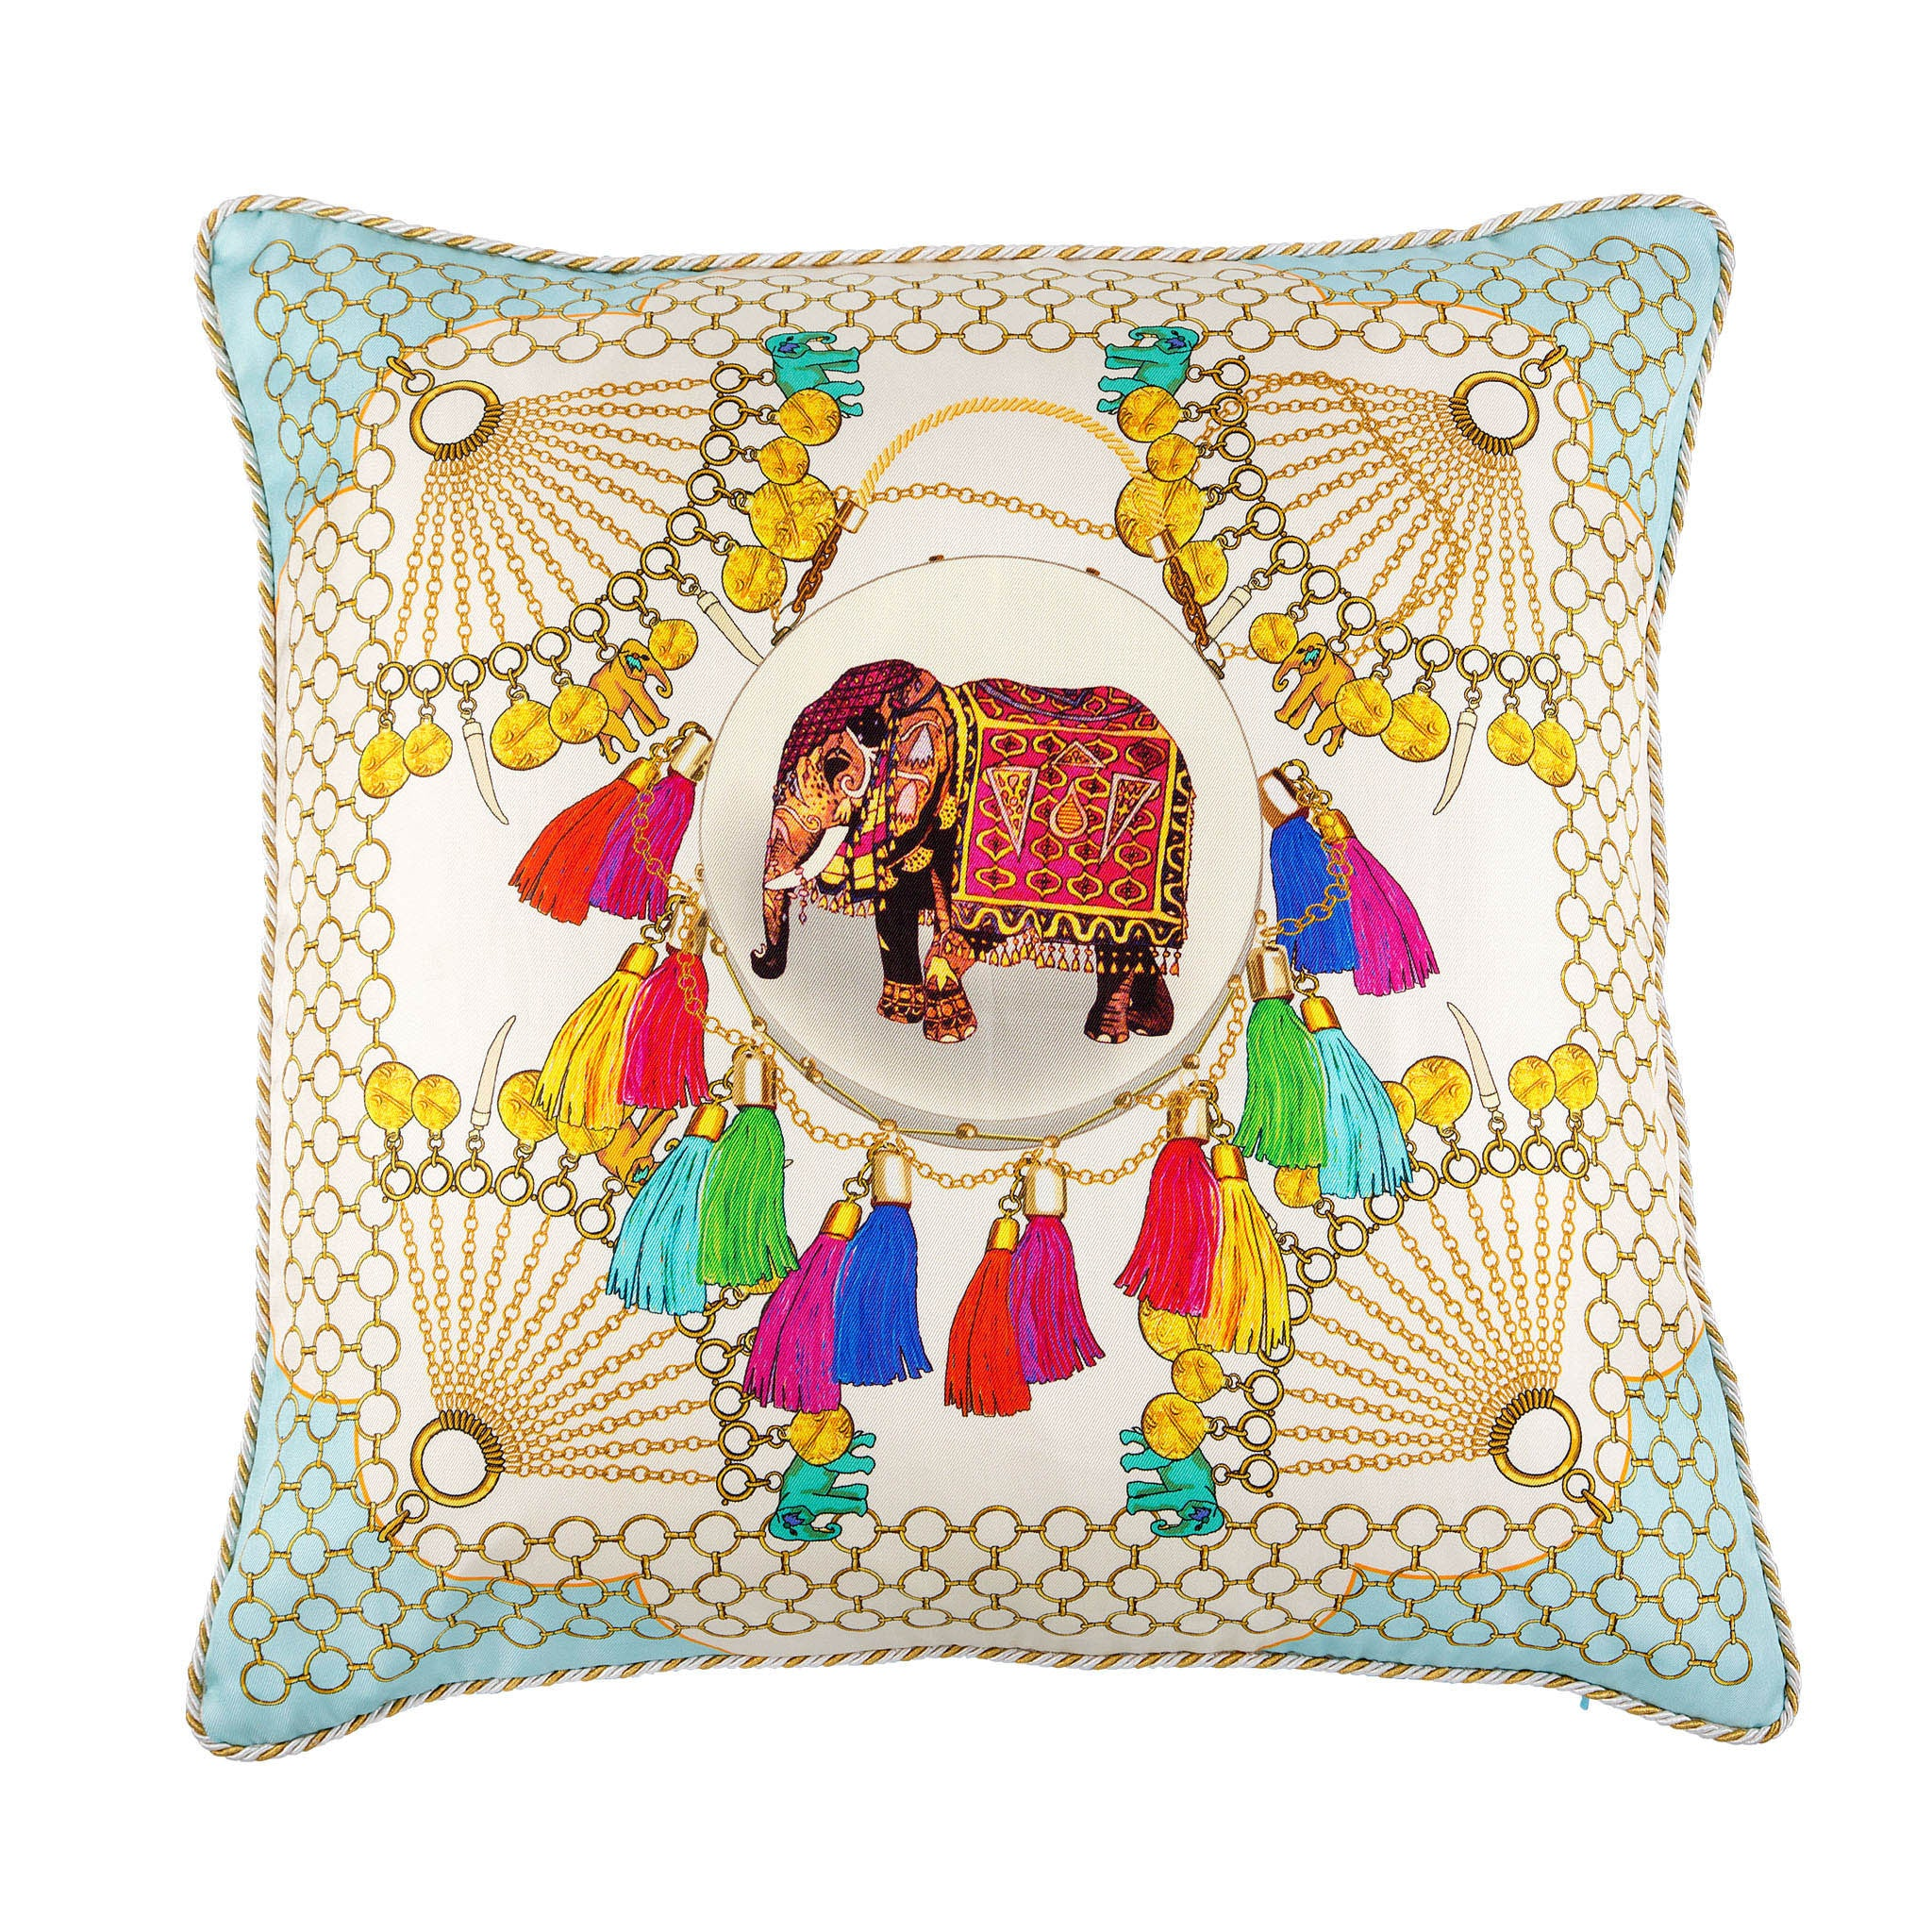 Silk twill and velvet Indian elephant print cushion - Bivain - 1